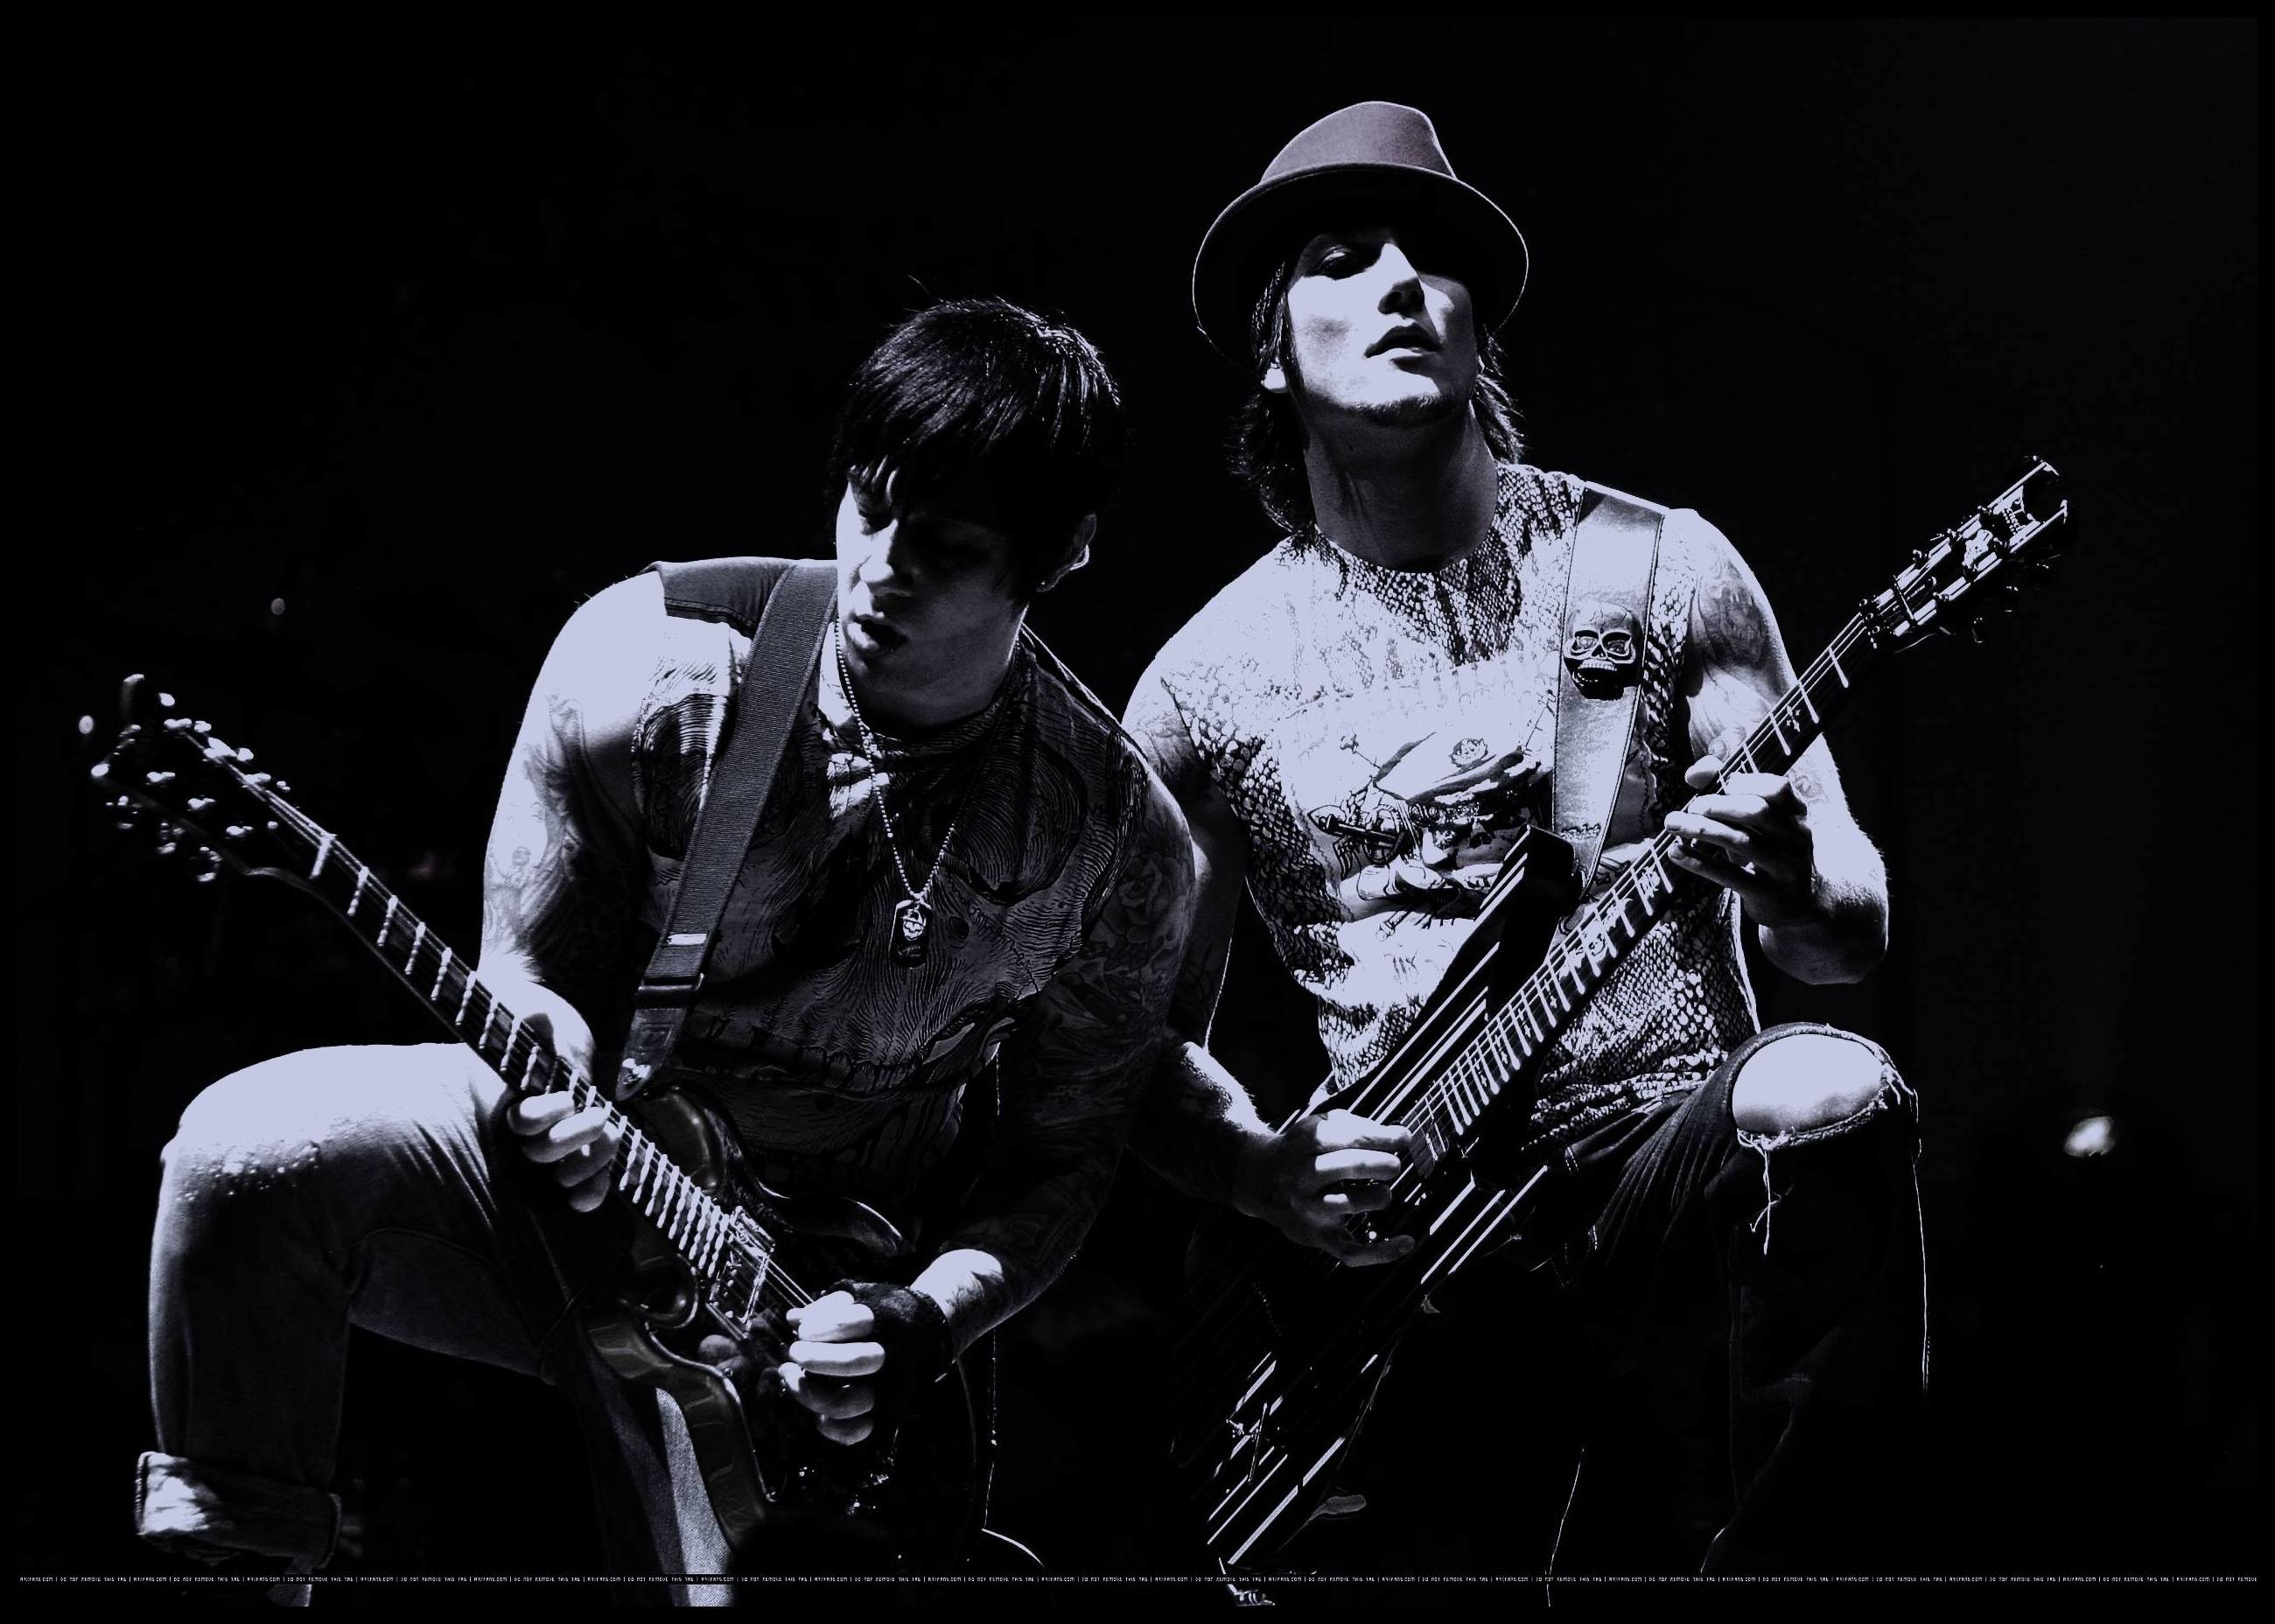 Avenged sevenfold hd wallpaper 72 images 2500x1667 avenged sevenfold wallpaper 2013 6997519 voltagebd Gallery